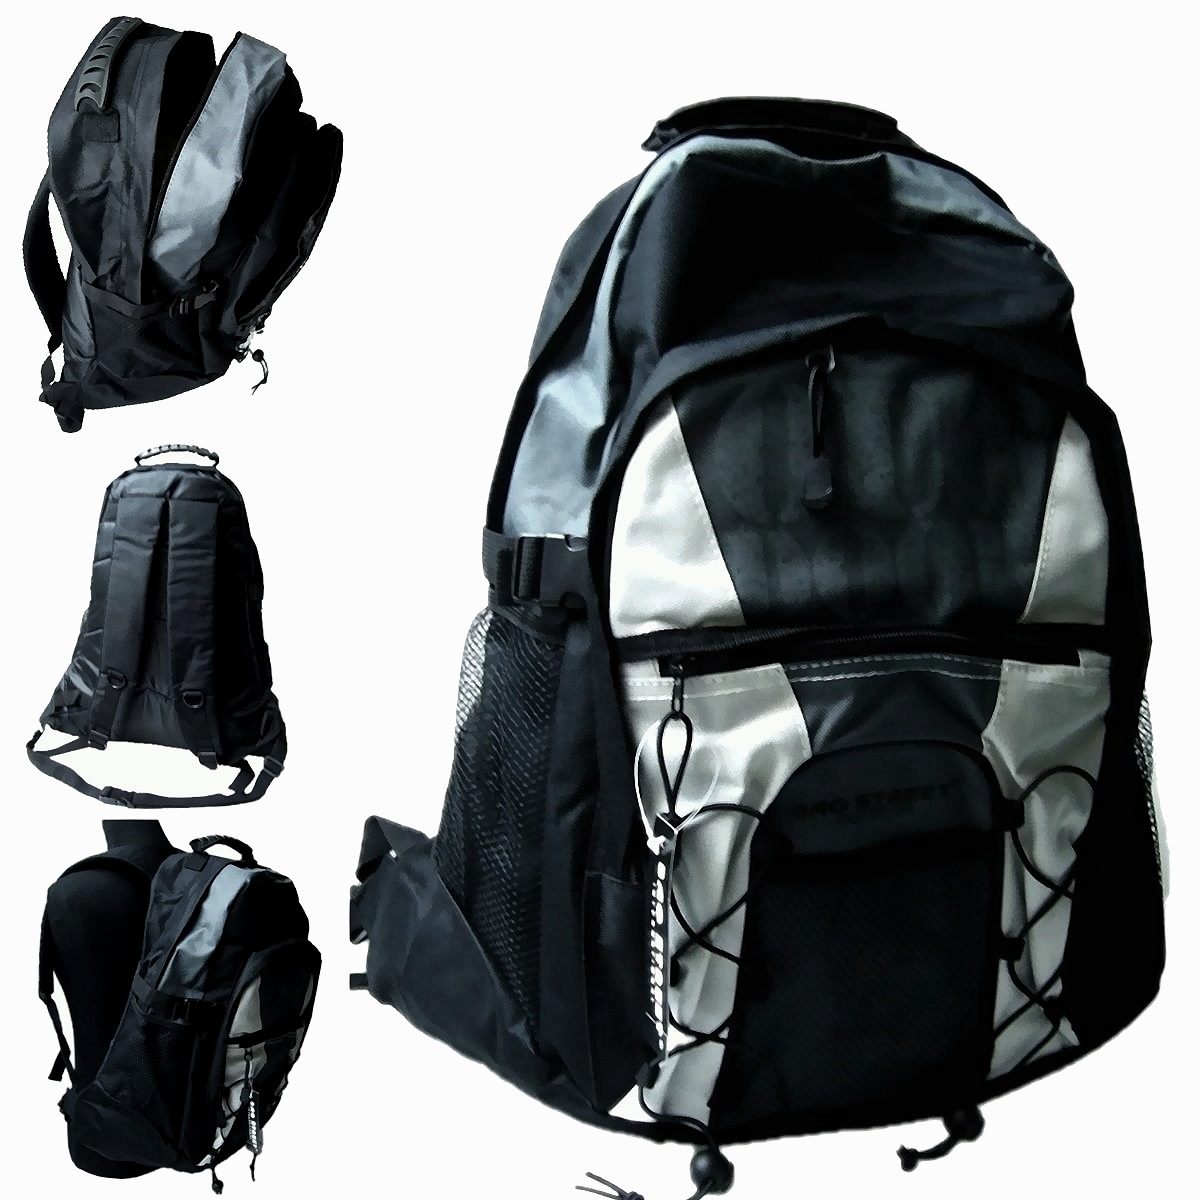 rucksack bodybag schule freizeit reise sport trekking. Black Bedroom Furniture Sets. Home Design Ideas